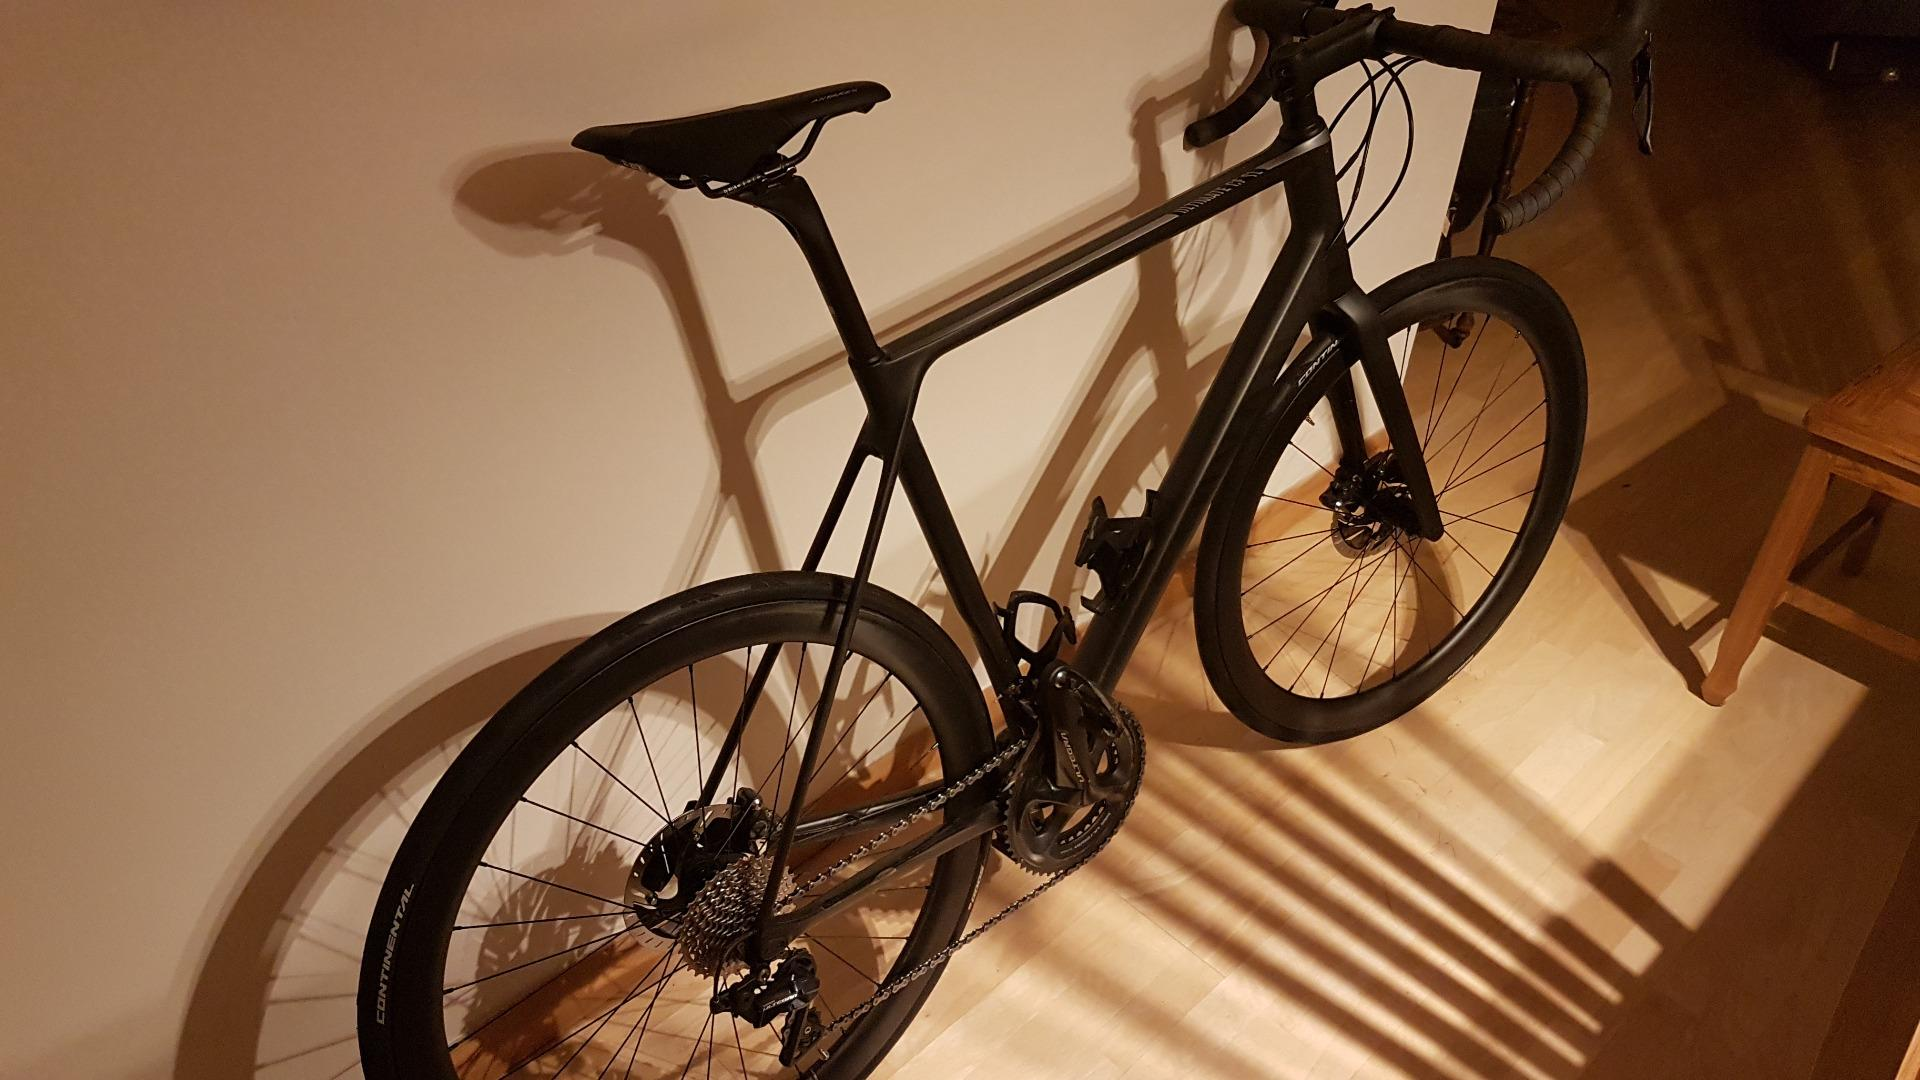 canyon-ultimate-cf-sl-road-bike-with-light-bicycle-r45-carbon-fiber-wheelset-and-continental-gp5000-tyres